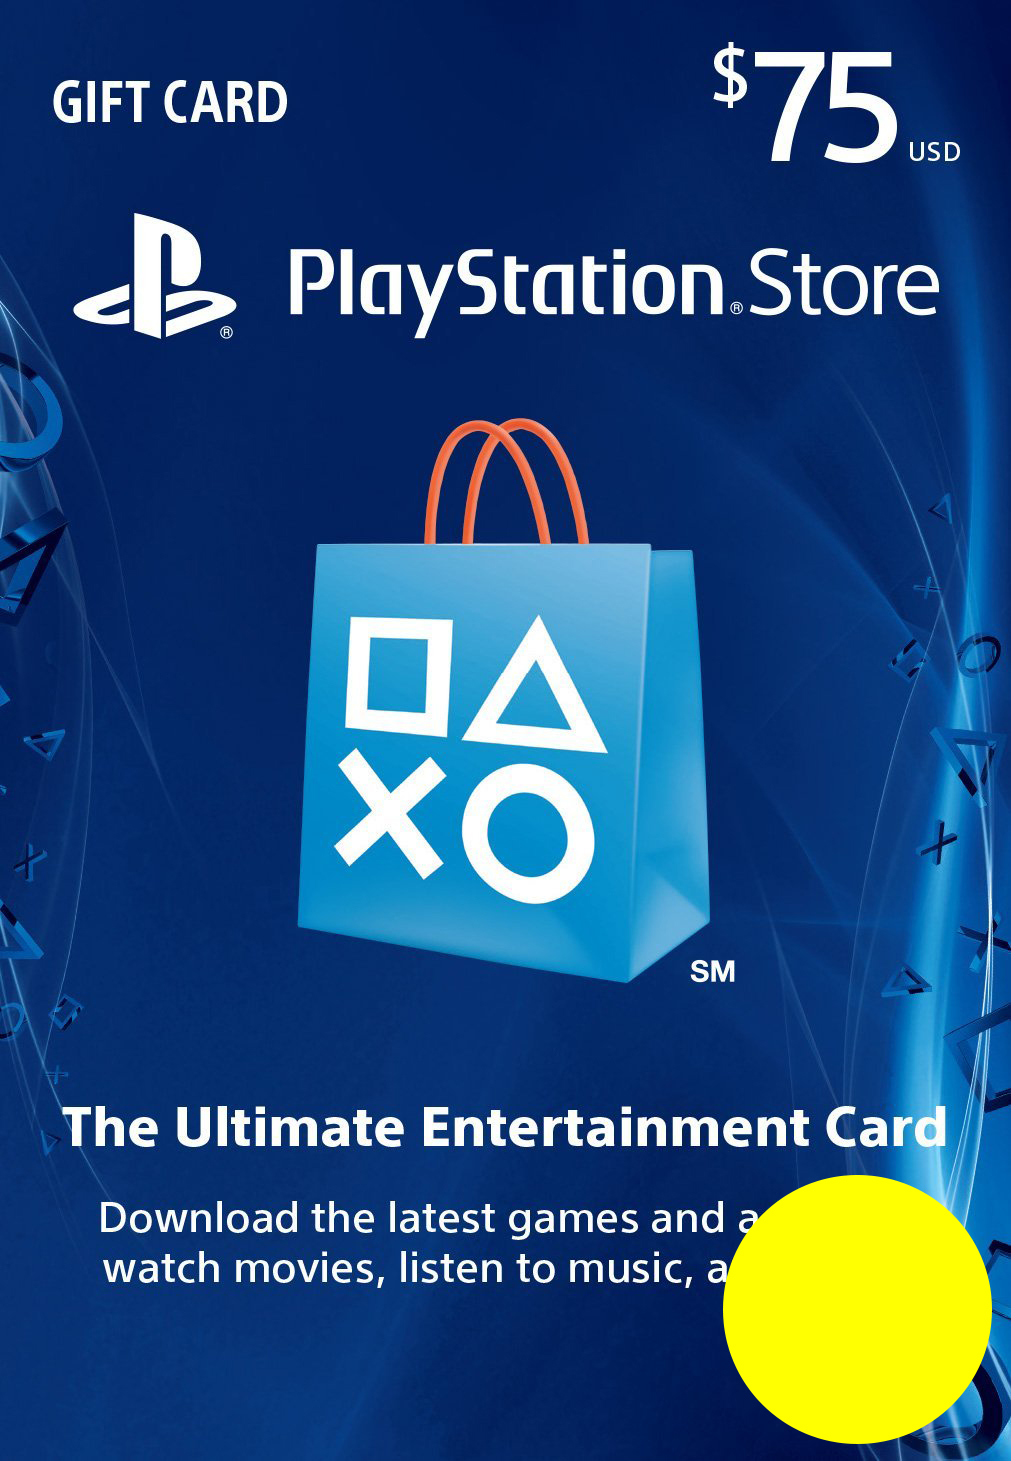 PSN Gift Card Code USA $75 PS4, PS3, PS Vita